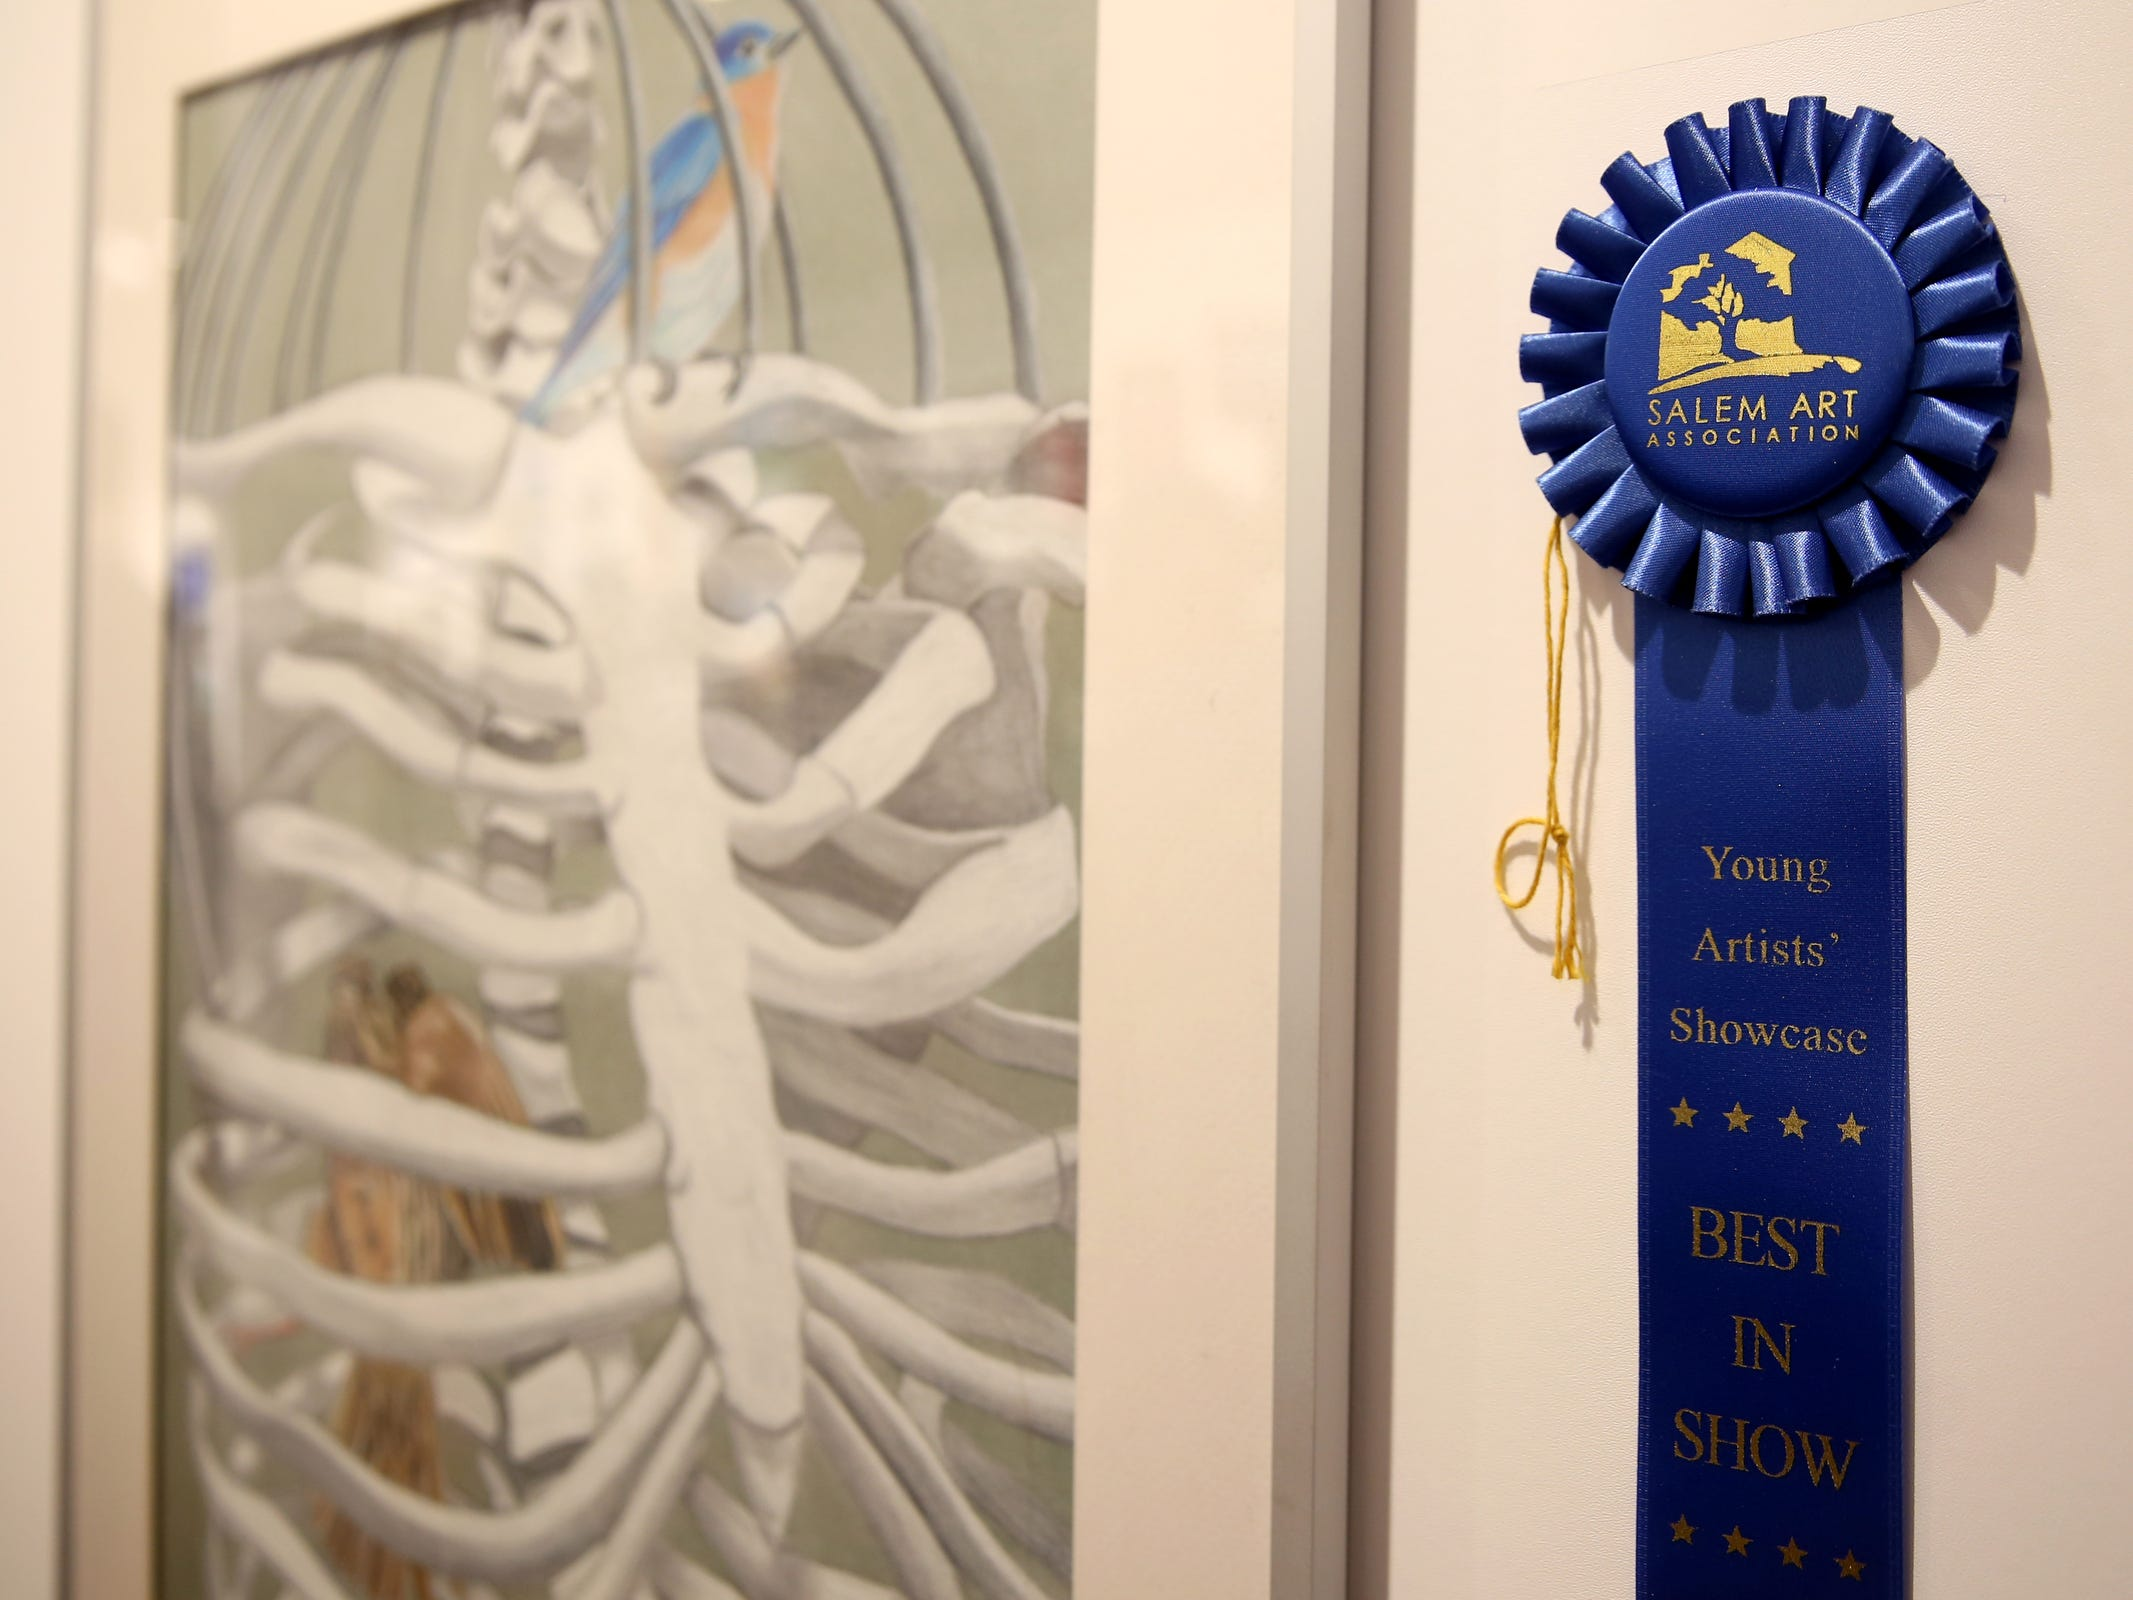 An artwork by Elizabeth Orlov, a Sprague High School senior, is awarded Best in Show during the 10th annual Young Artists' Showcase at the Bush Barn Art Center in Salem on March 9, 2019. The exhibit features artwork by more than 400 students in Marion, Polk and Yamhill counties and runs through April 20.